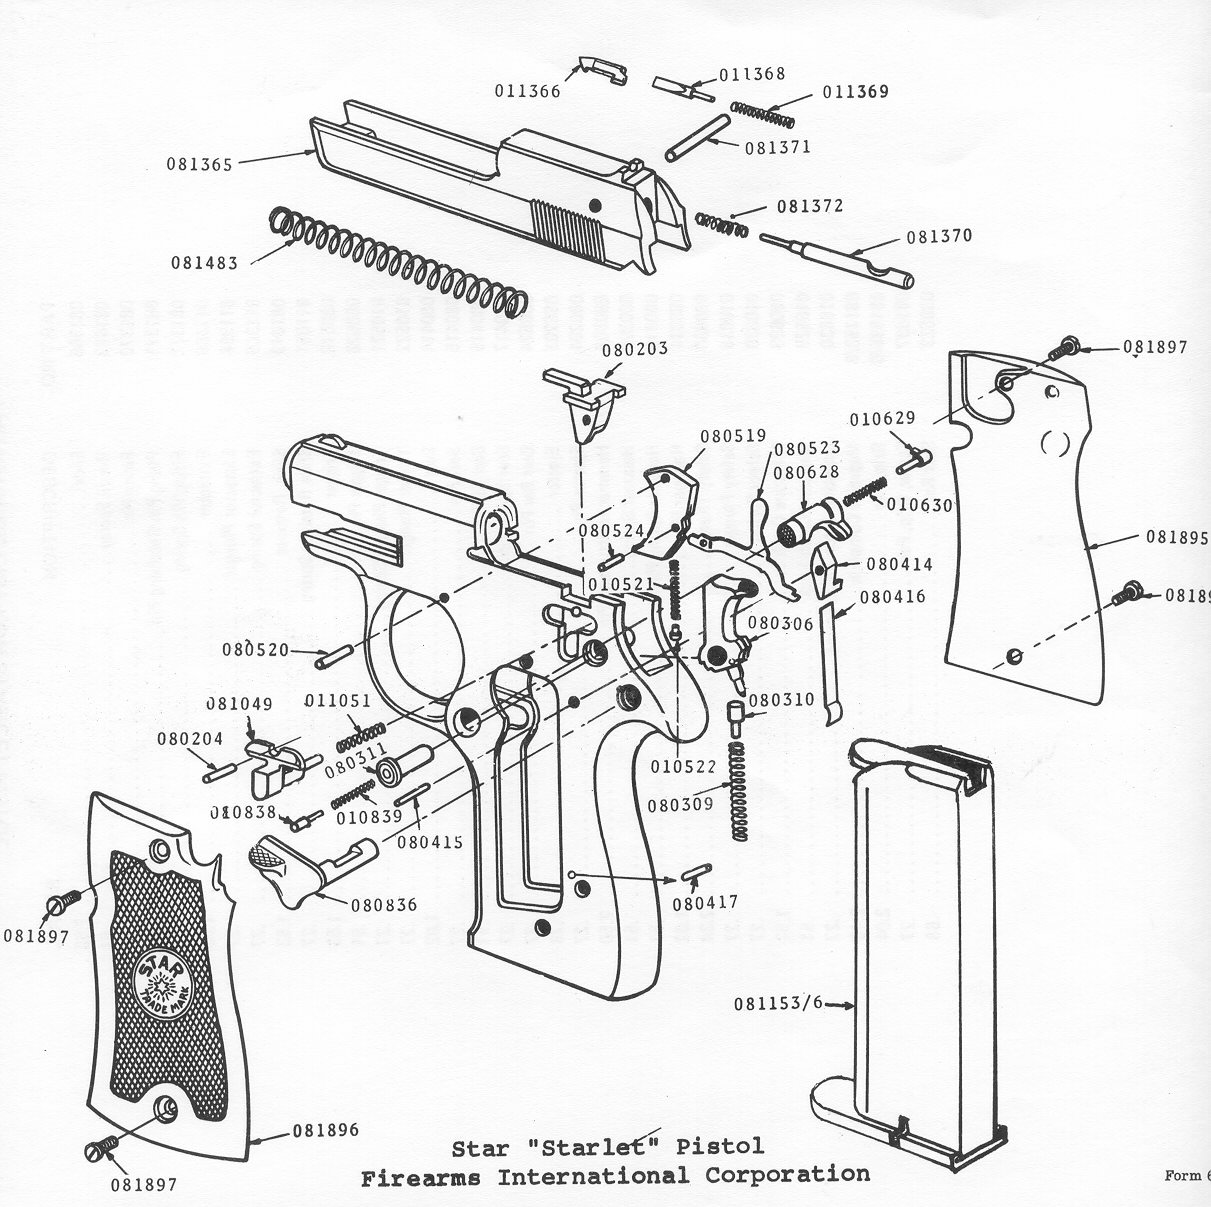 Drawn pistol schematic Gun Shop Bob's Repair Parts